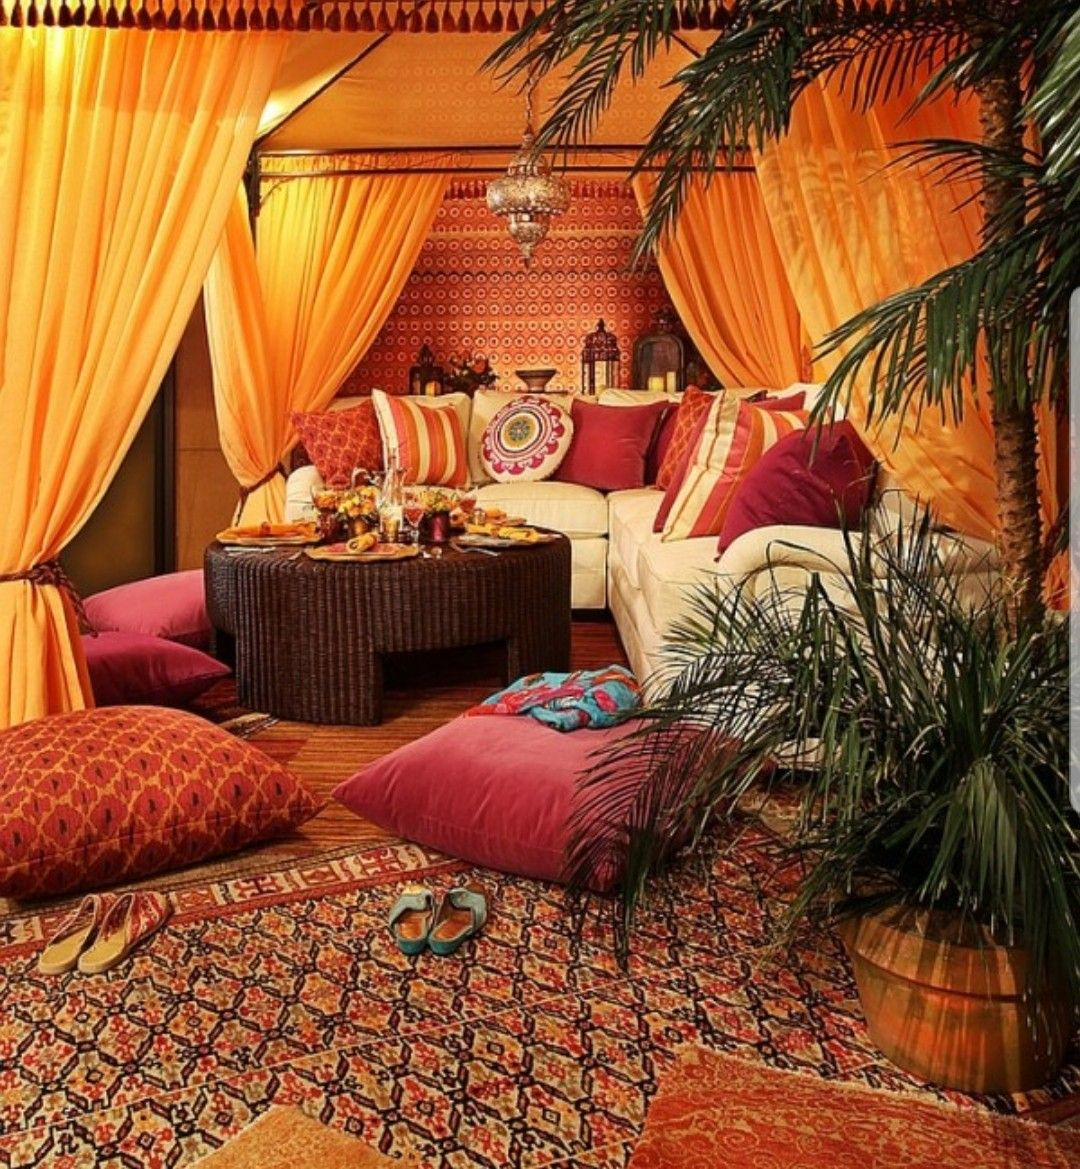 Pin by asha clarke on moroccan home decor in pinterest